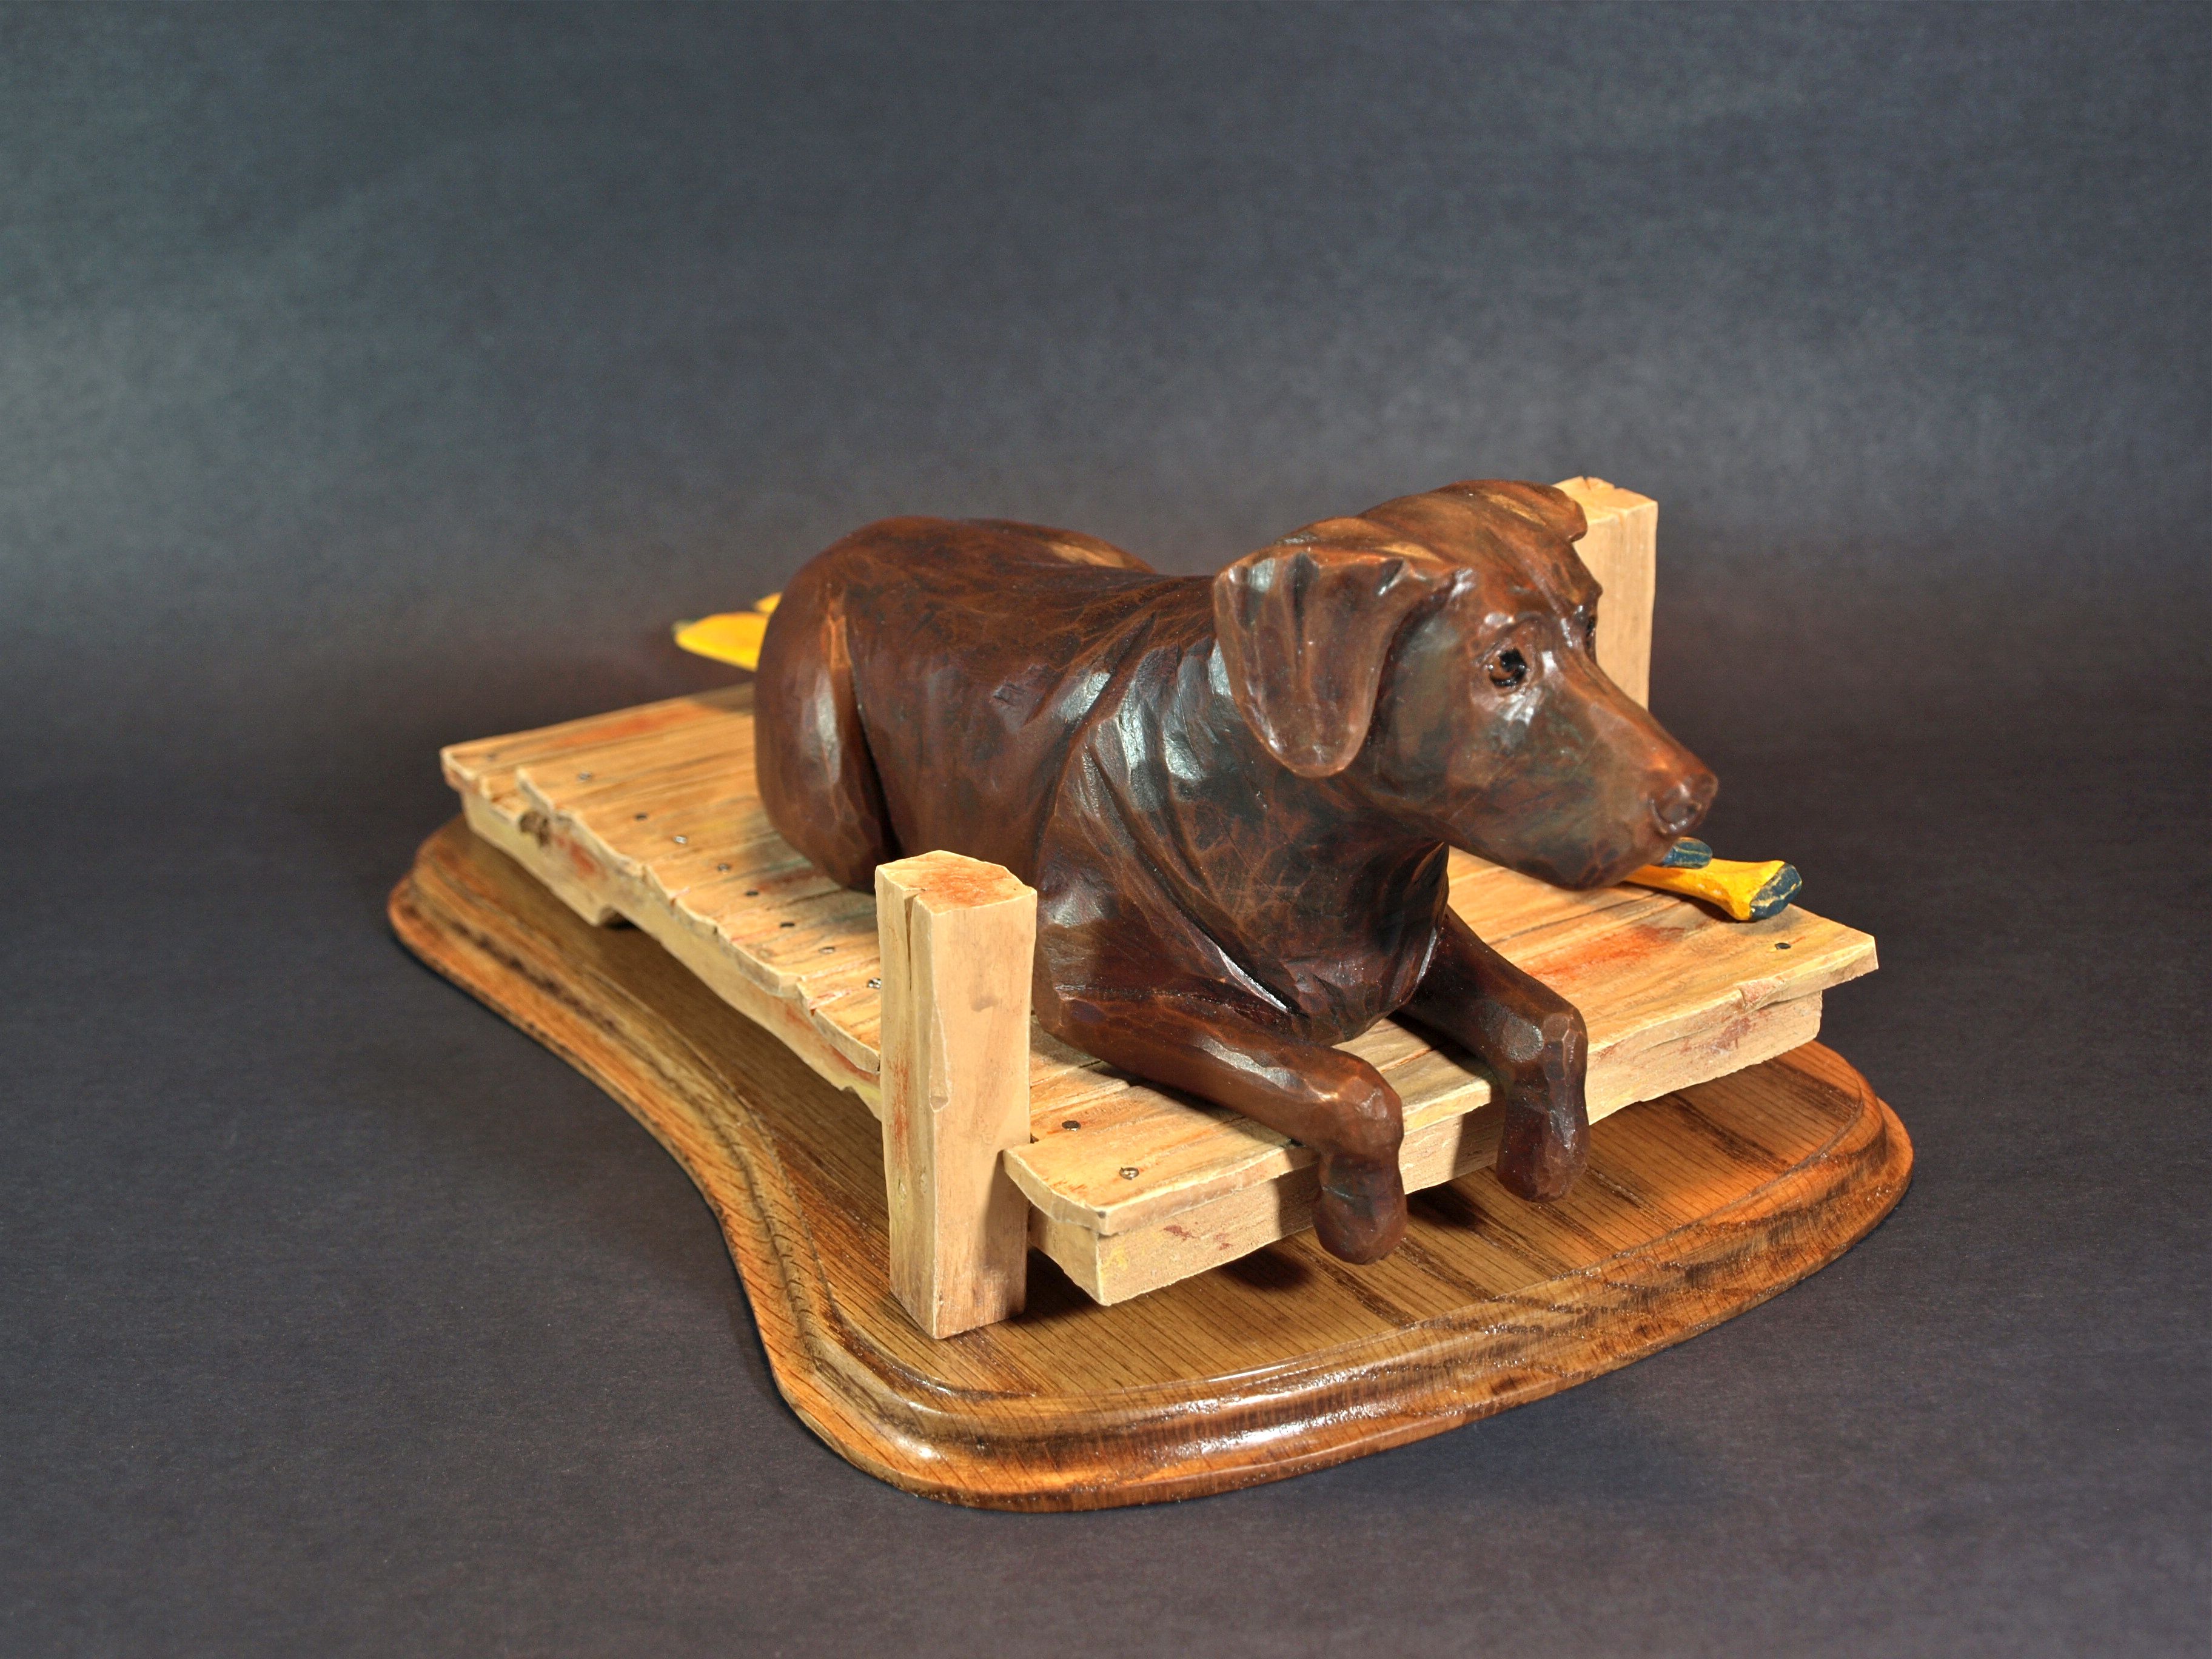 Rolling caricature animals woodcarving illustrated